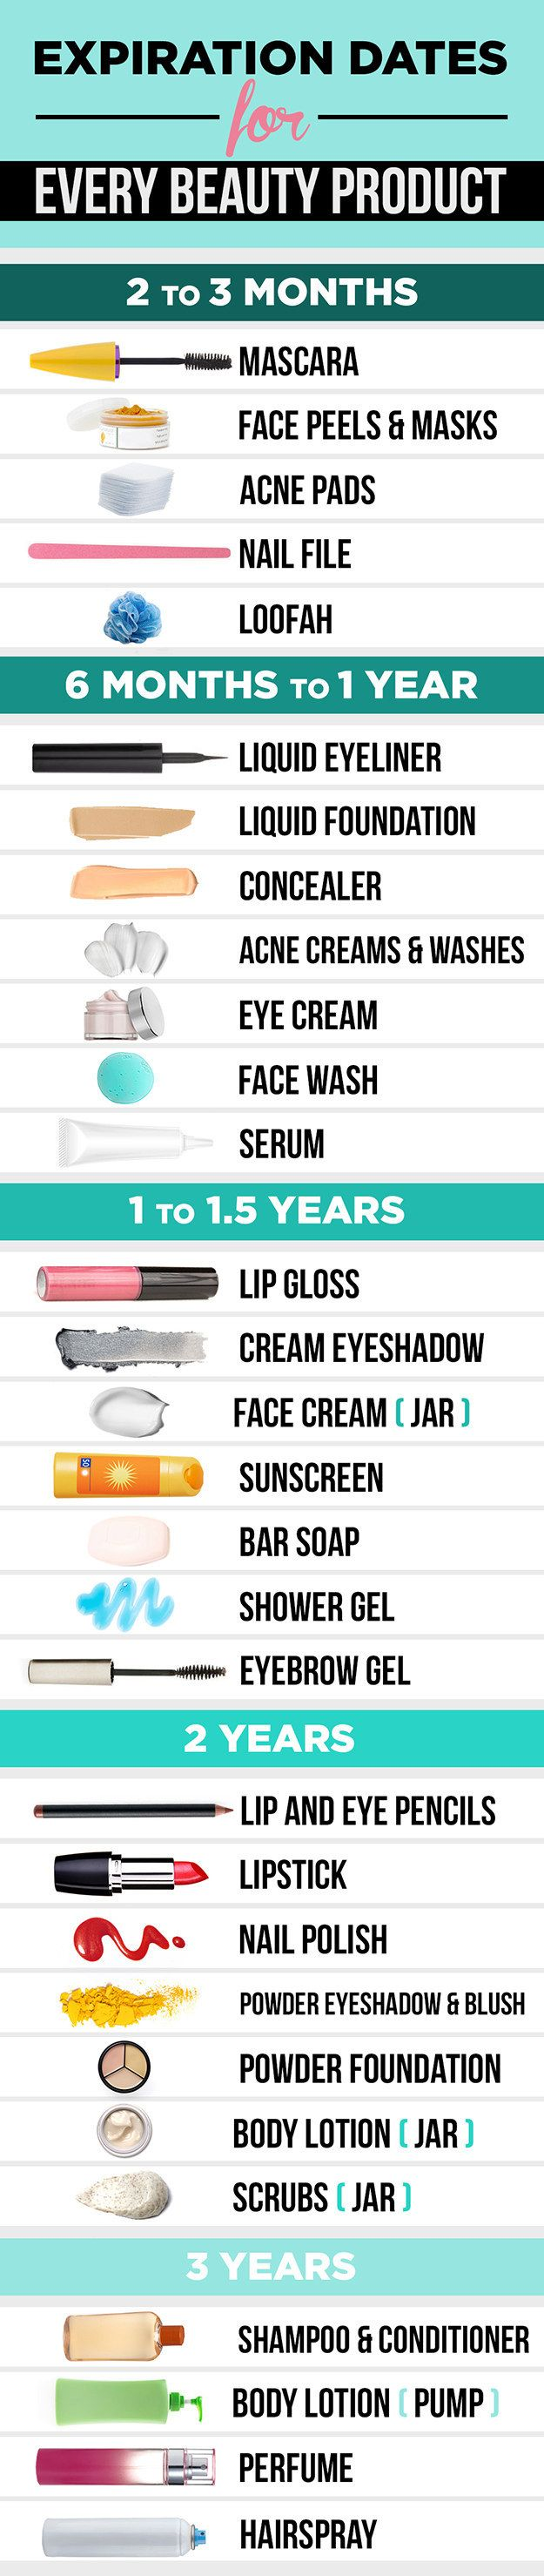 Avoid eye infections, breakouts, and more health issues by tossing your beauty p...